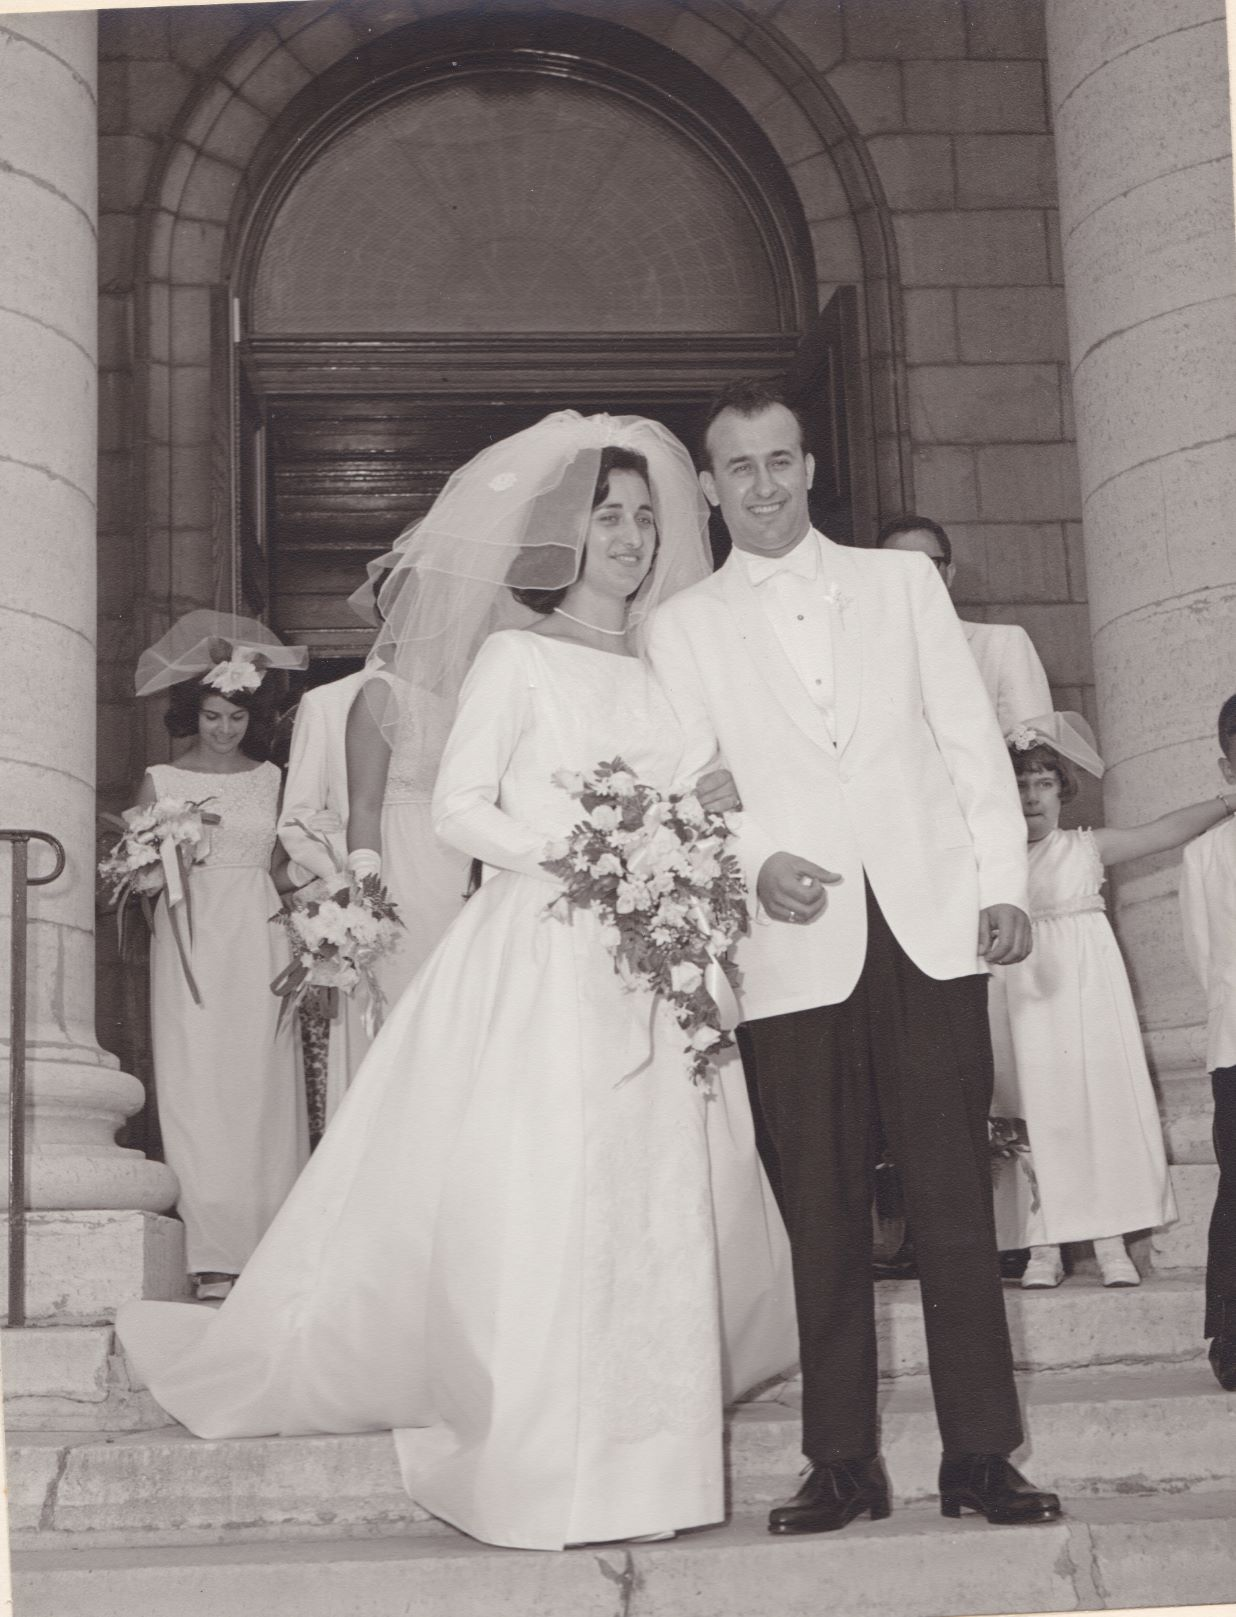 This is a photo from Tom and Voula Stathopolous's wedding, which took place at St. George's Cathedral. In this photo, they are exiting the steps of the cathedral.